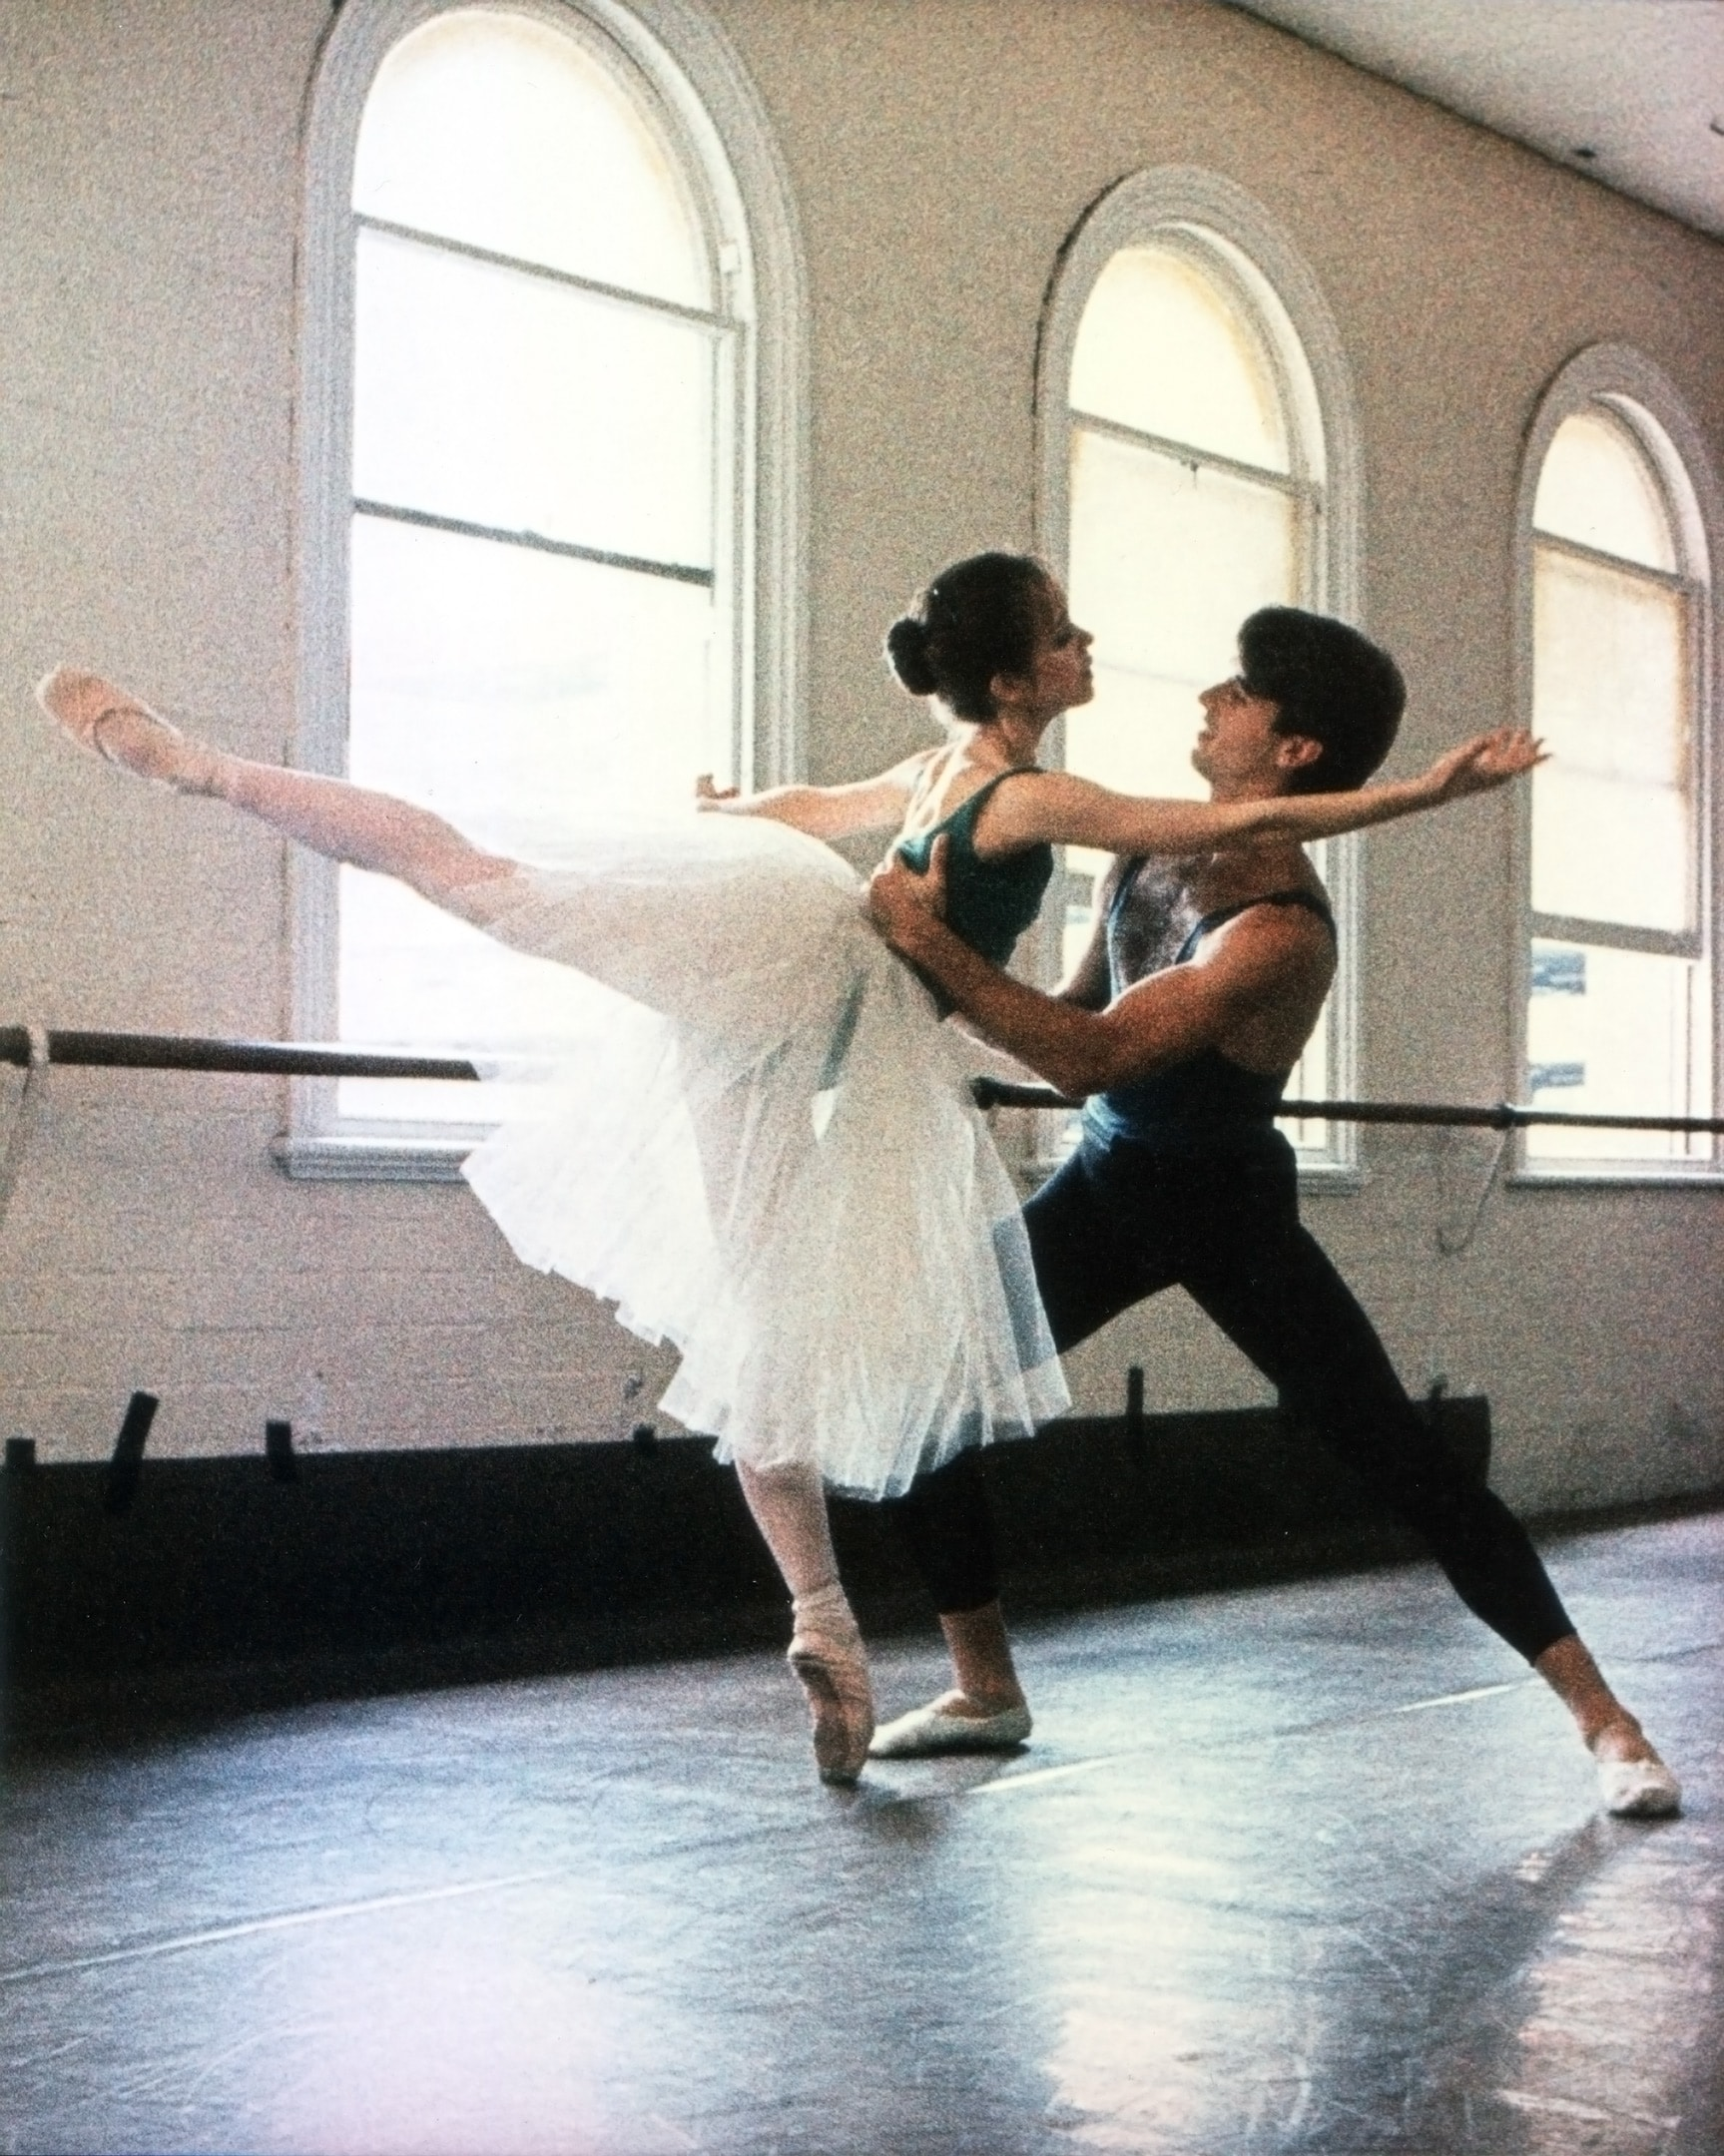 Rosetta Cook: Giselle (rehearsal) - with Dale Pengelly